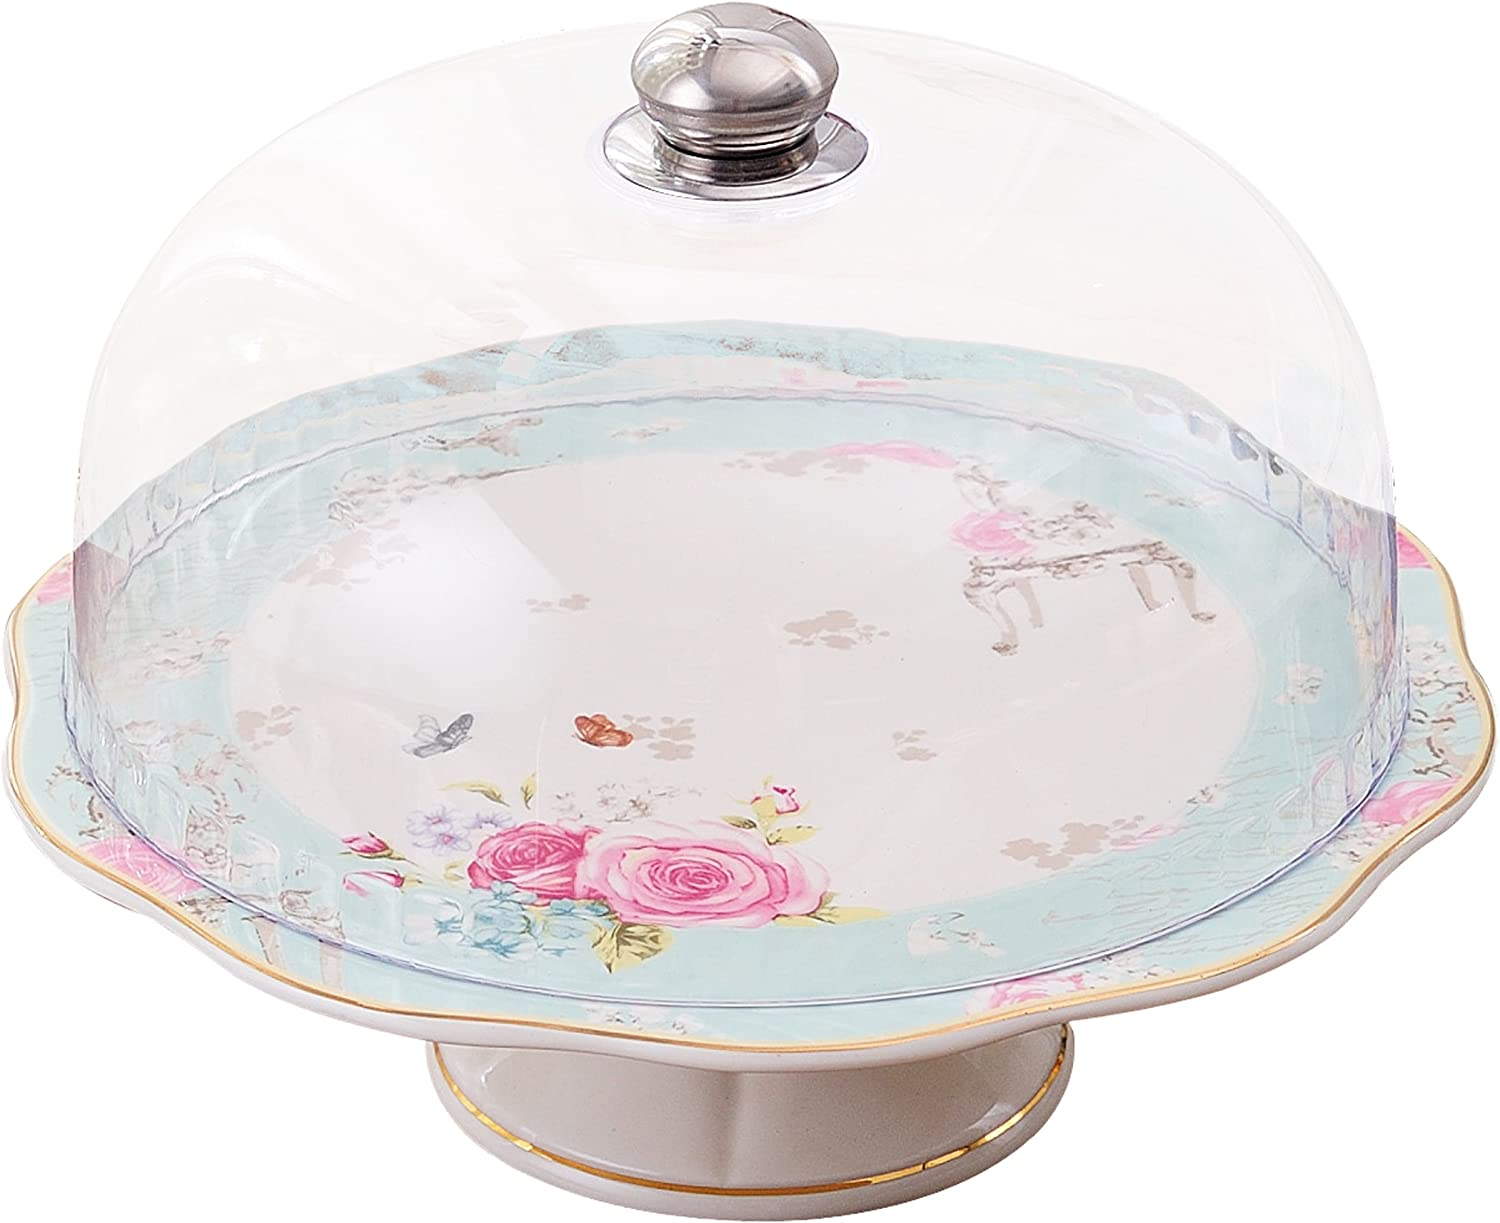 CS01 - Plastic Dome Jusalpha White Ceramic Decorative Cake Stand-Cupcake Stand with Dome